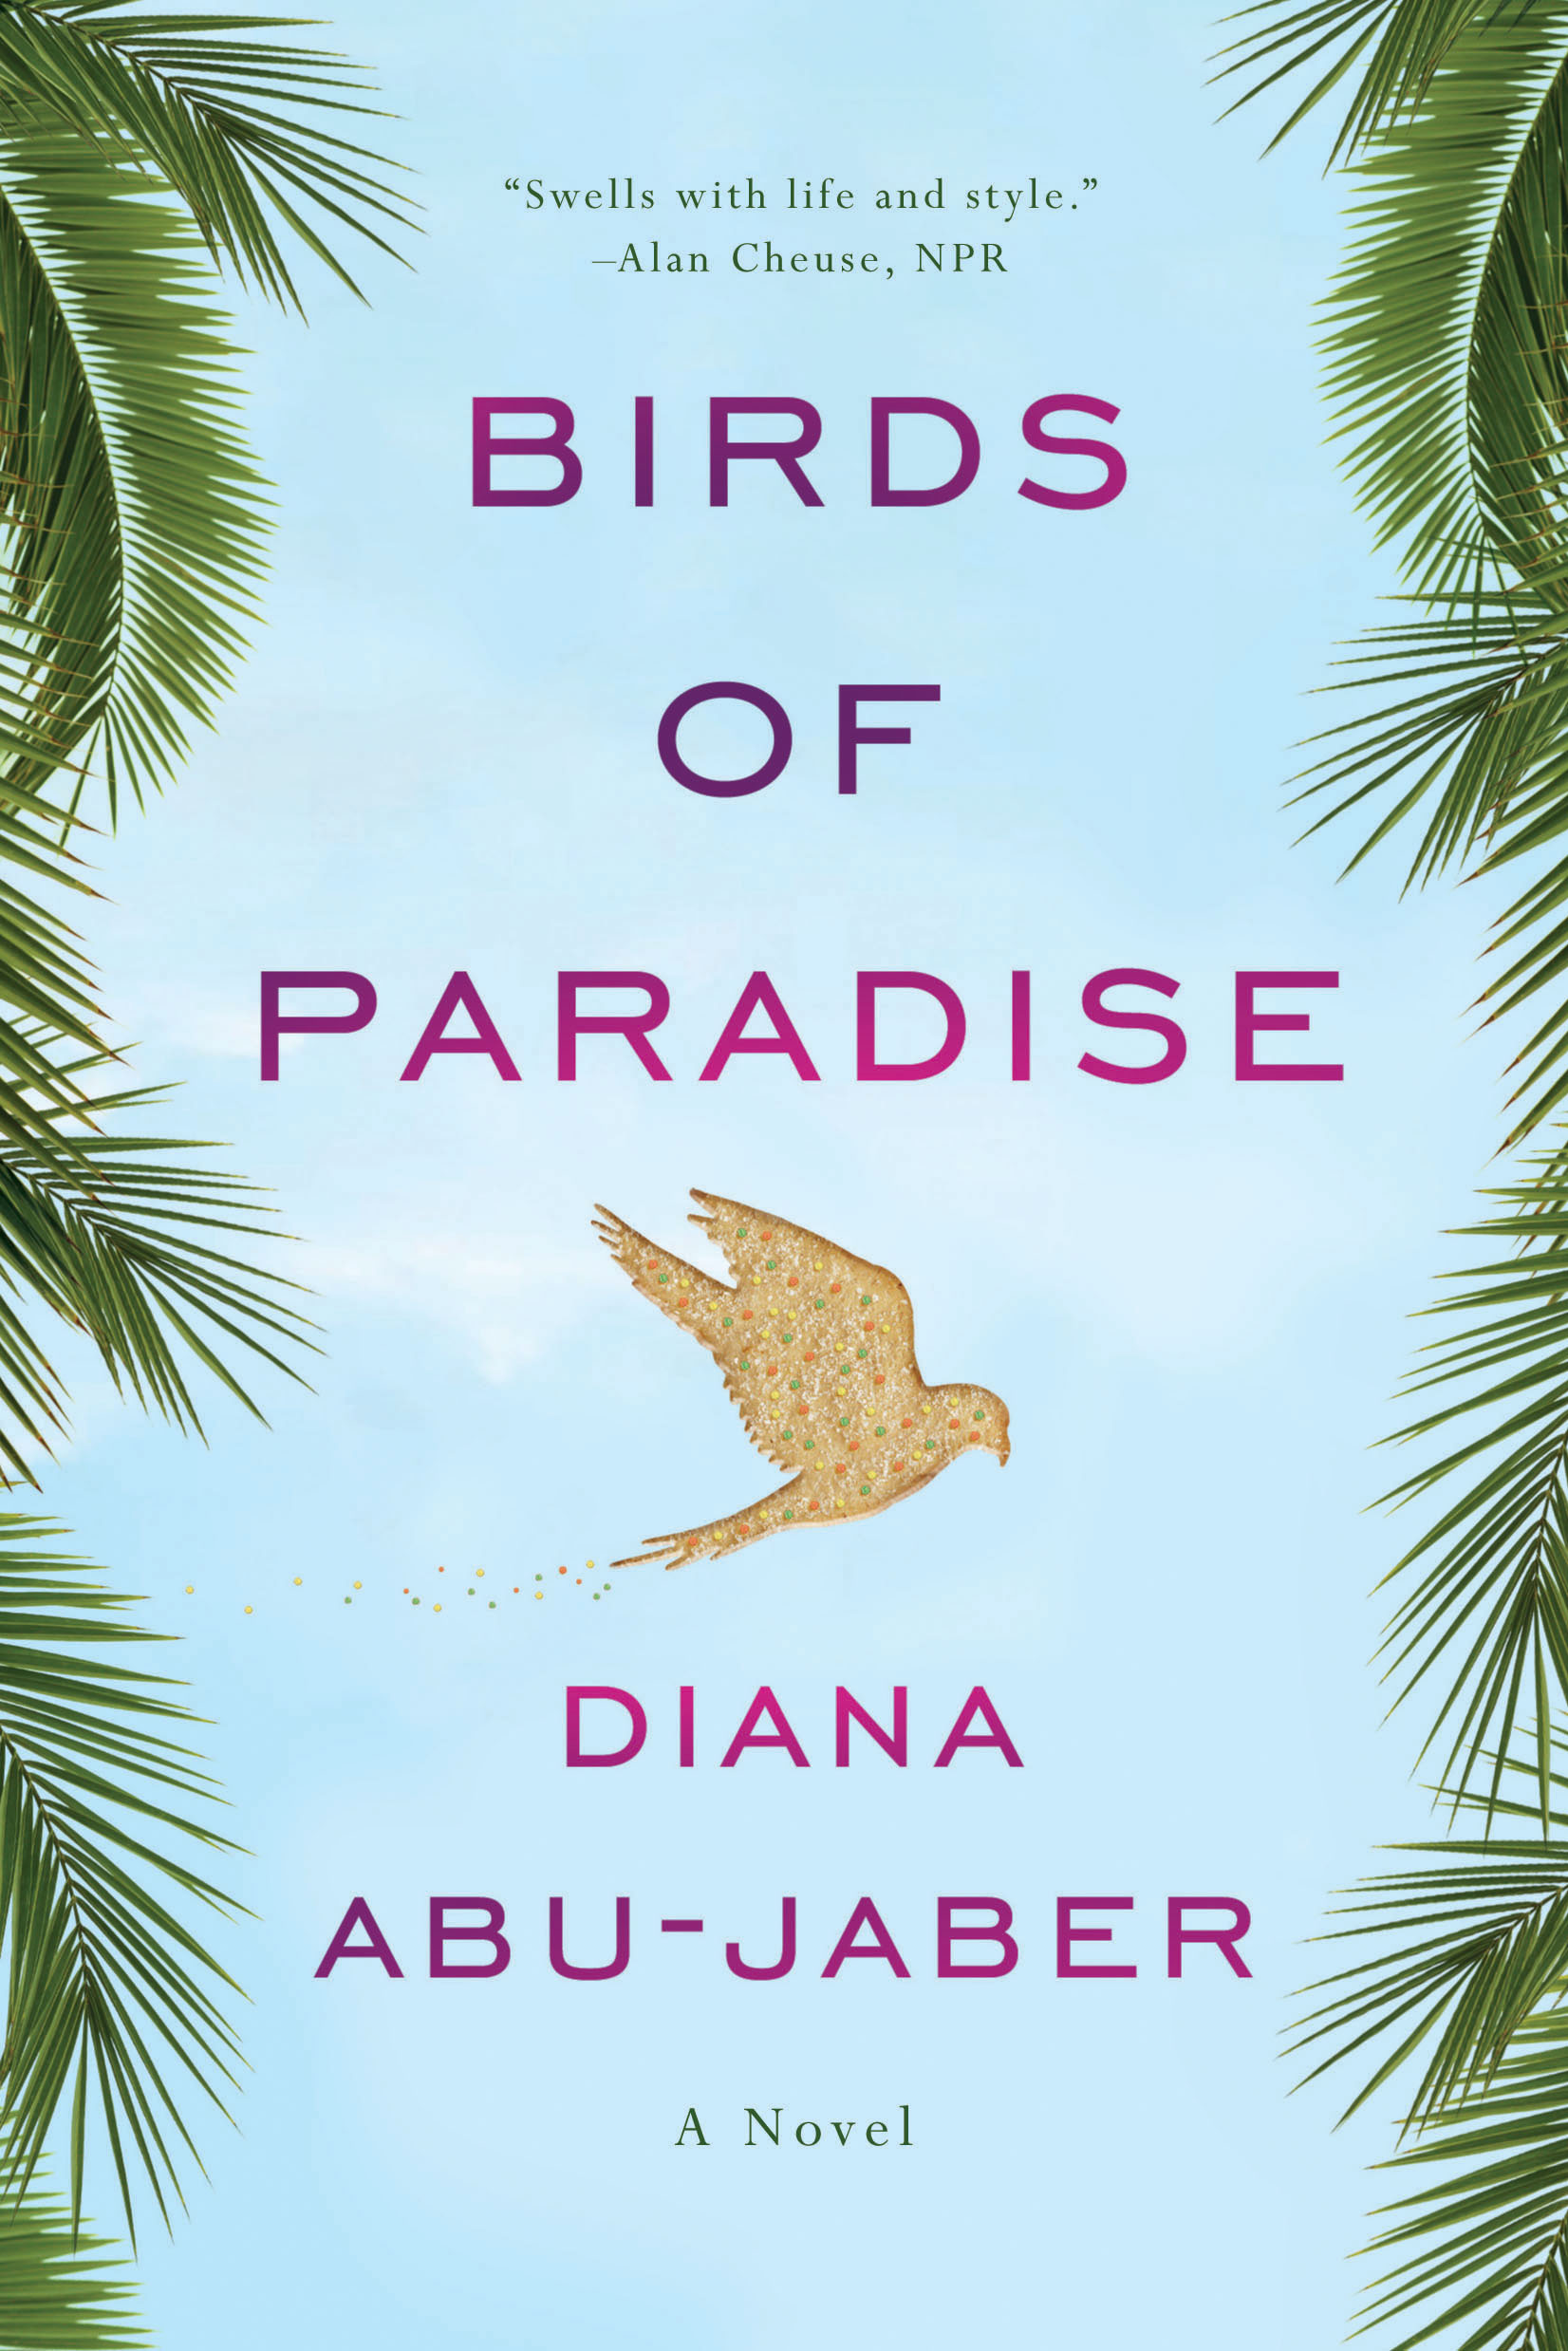 book doctors interview diana abu jaber on how to write literary 2014 06 05 birdsofparadisepbk jpg